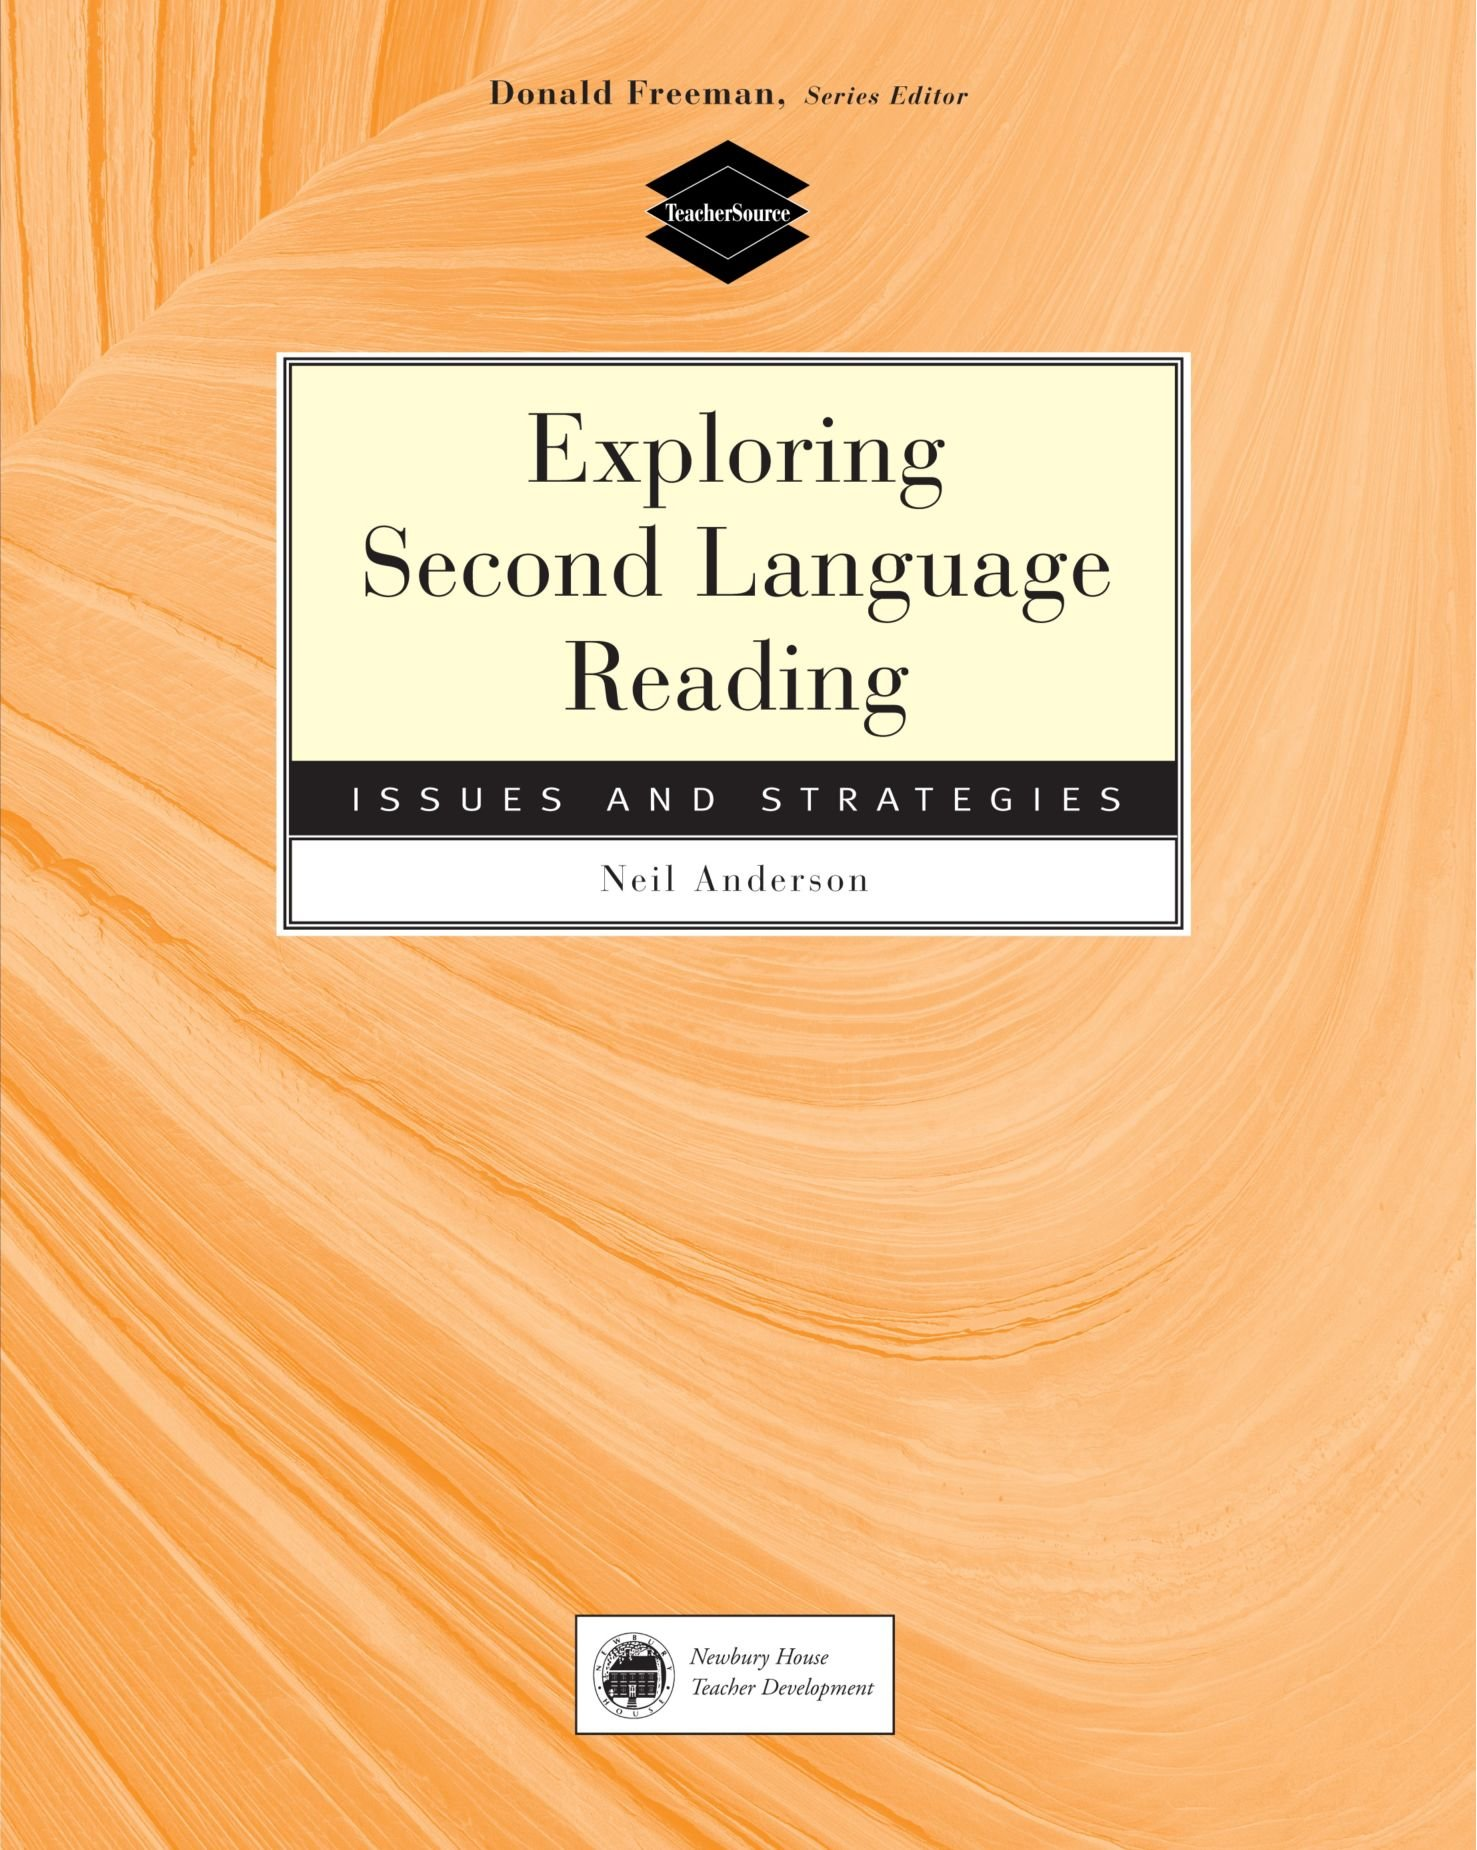 Exploring Second Language Reading: Issues and Strategies by Heinle & Heinle Publishers